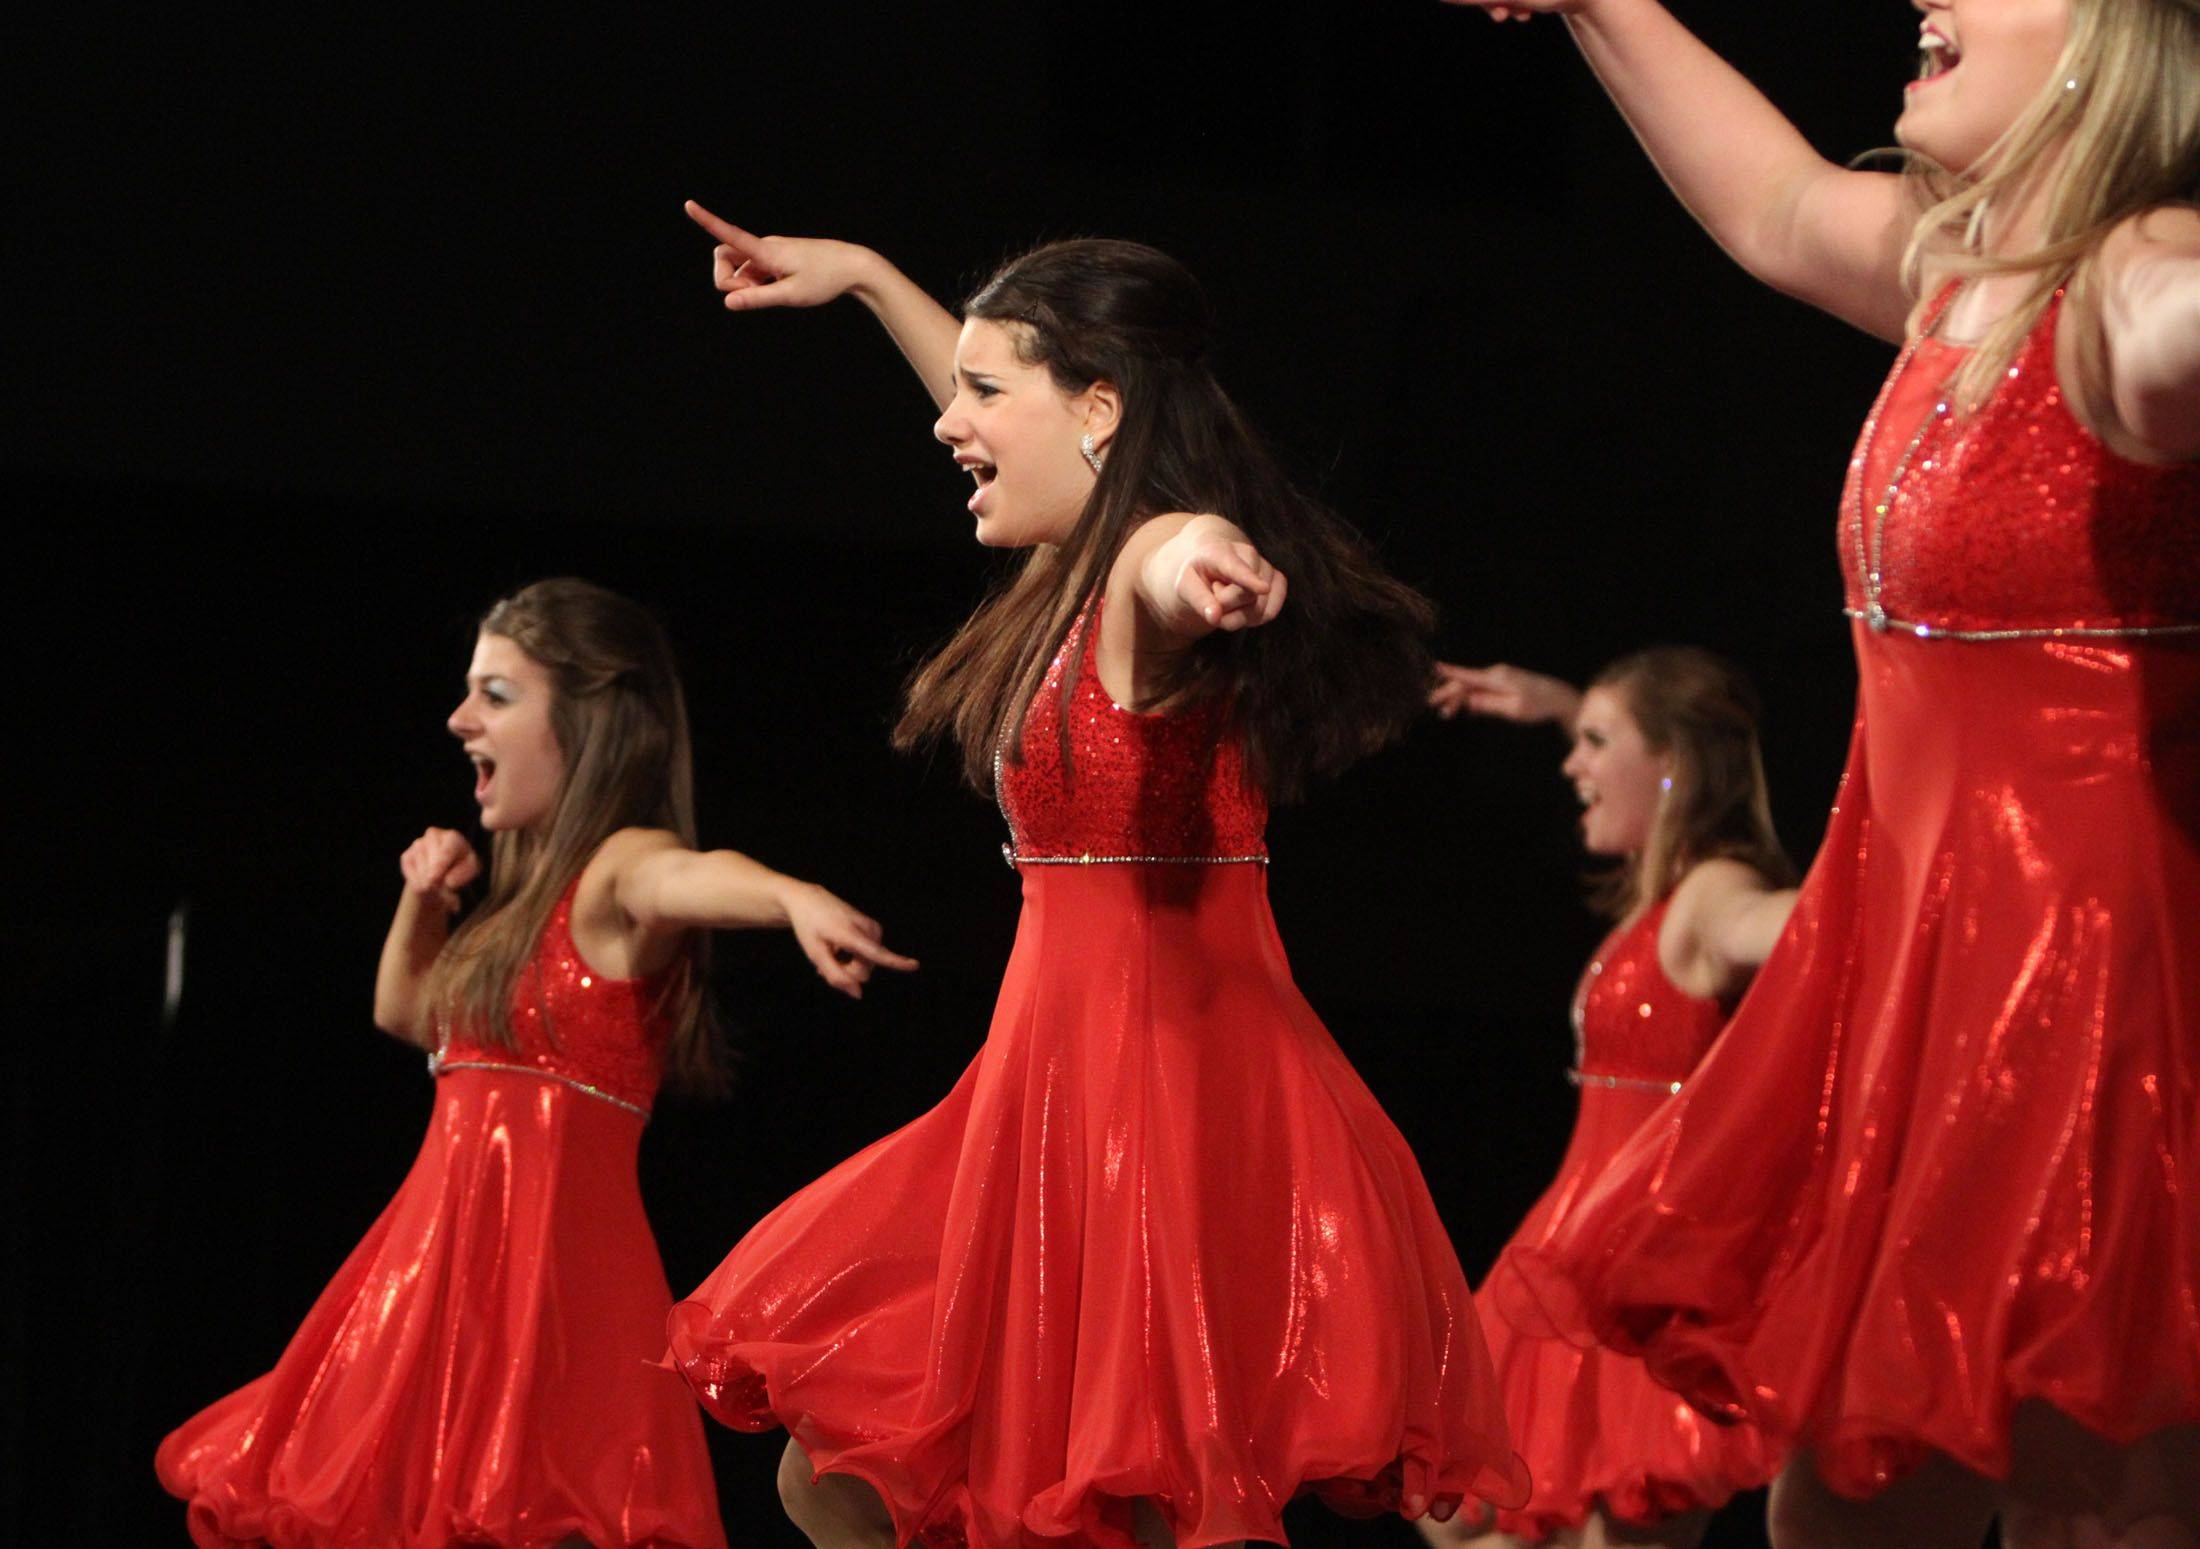 Rolling Meadows' Trebelious competes in the festival division at the 18th annual Chicagoland Showcase choir competition at Hersey in Arlington Heights on Saturday.